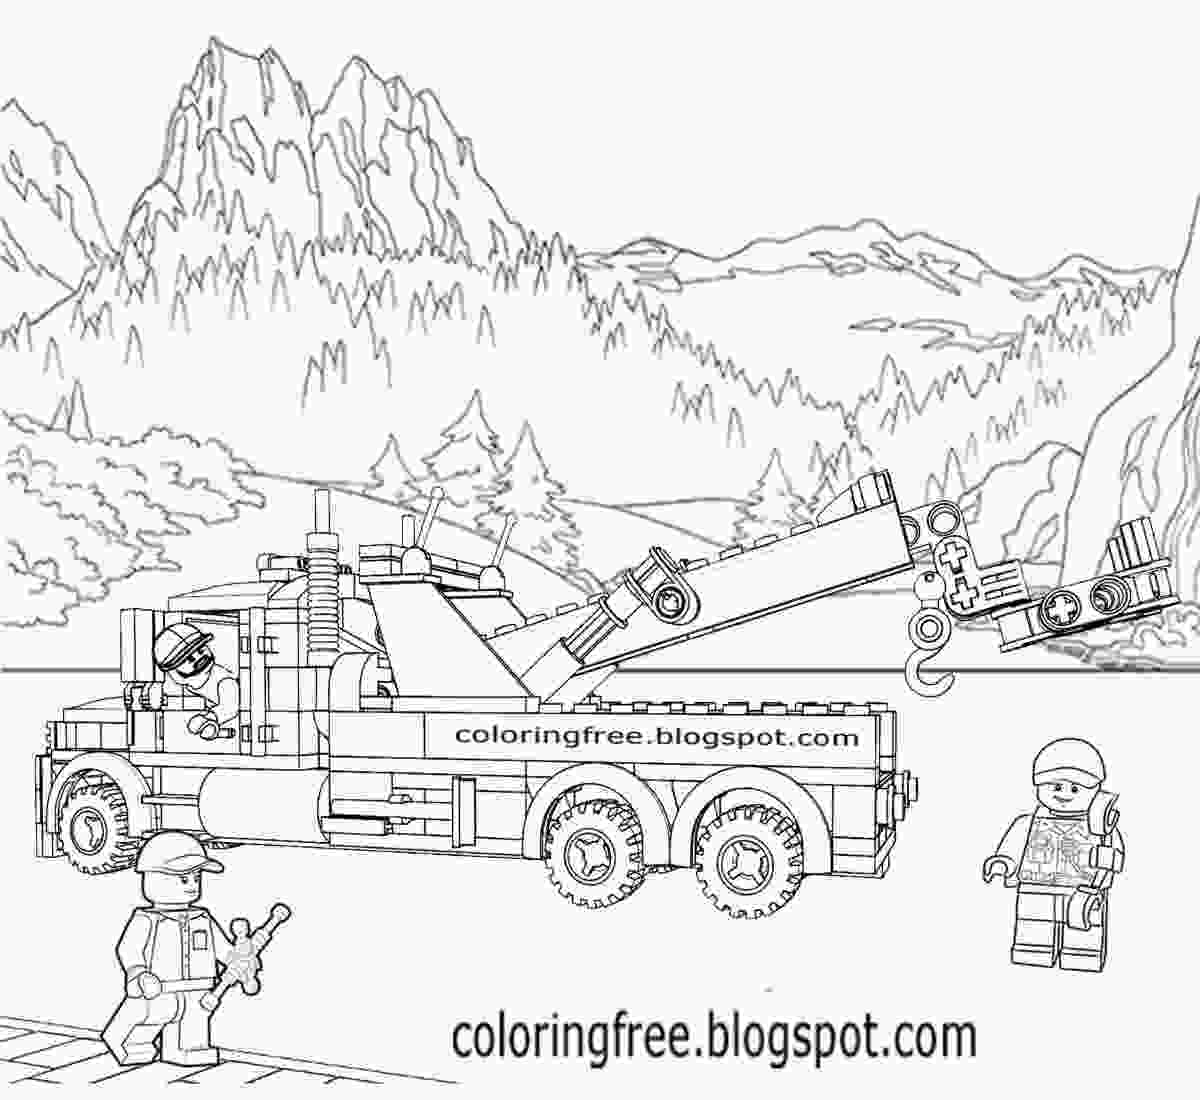 lego truck coloring pages printable lego city coloring pages for kids clipart truck lego coloring pages